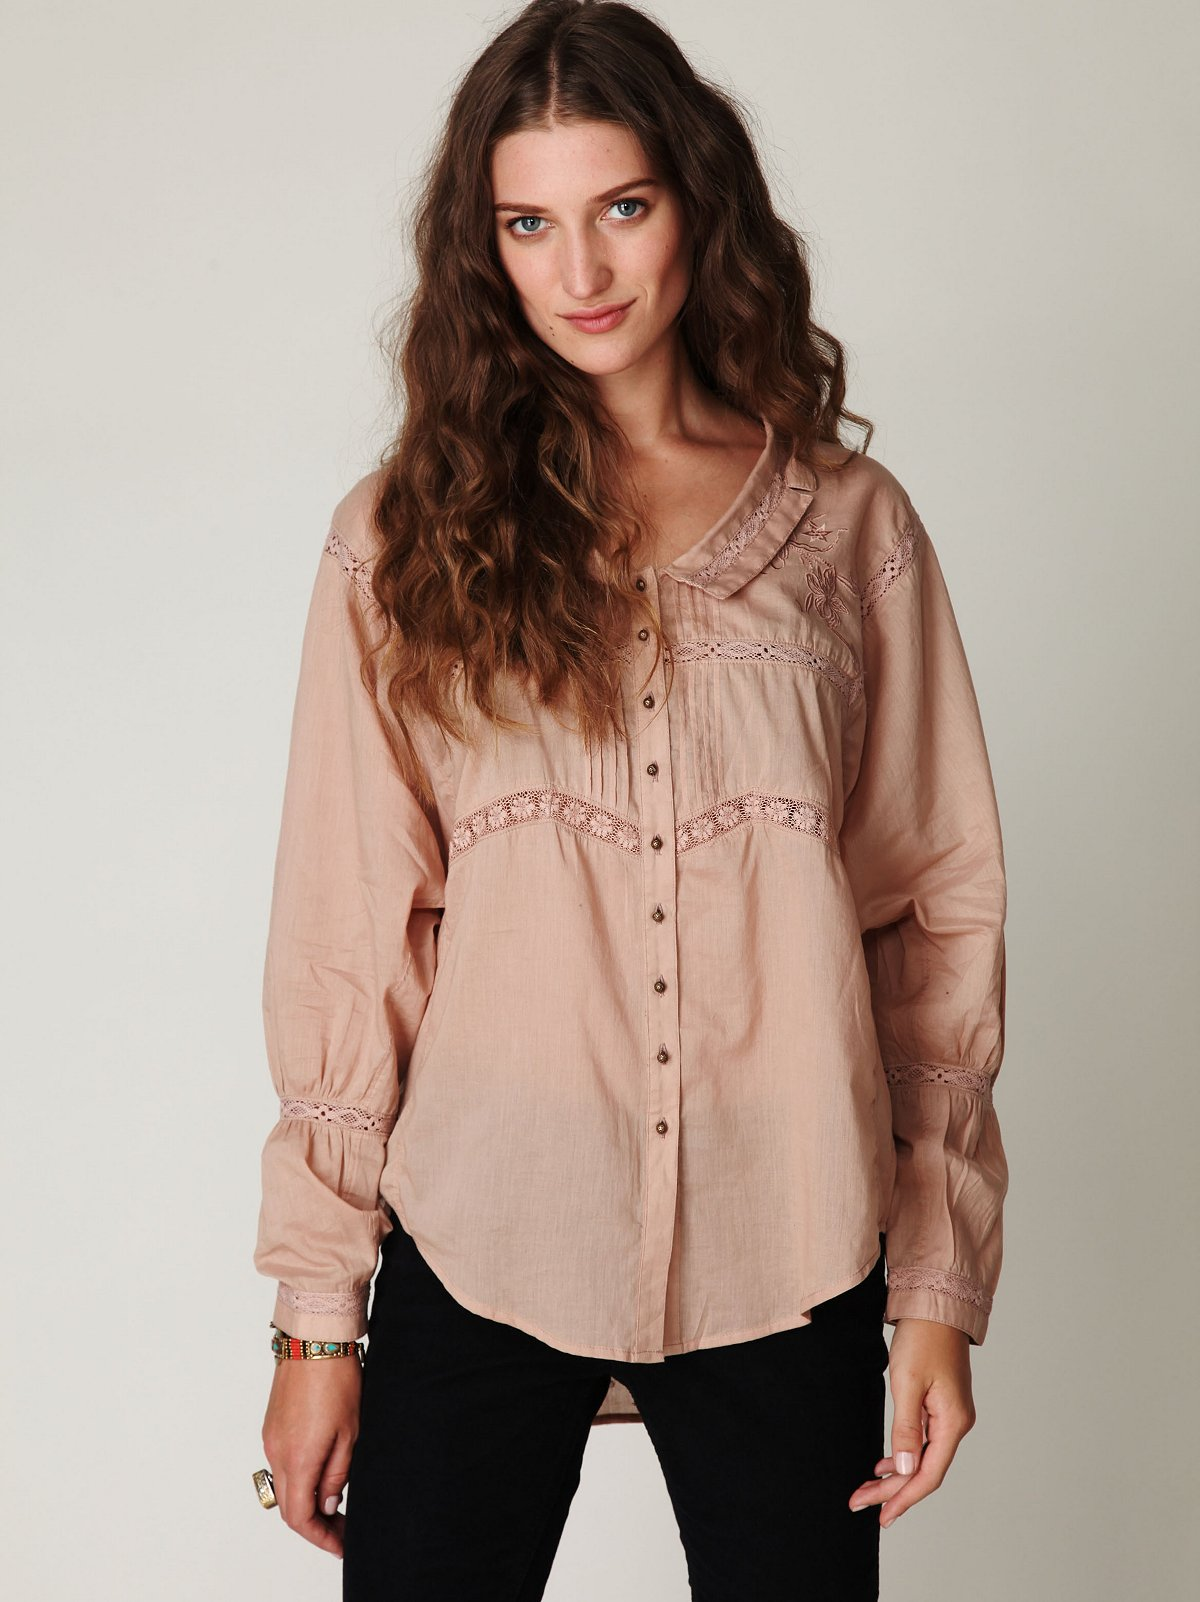 FP New Romantics Tie Front Blouse